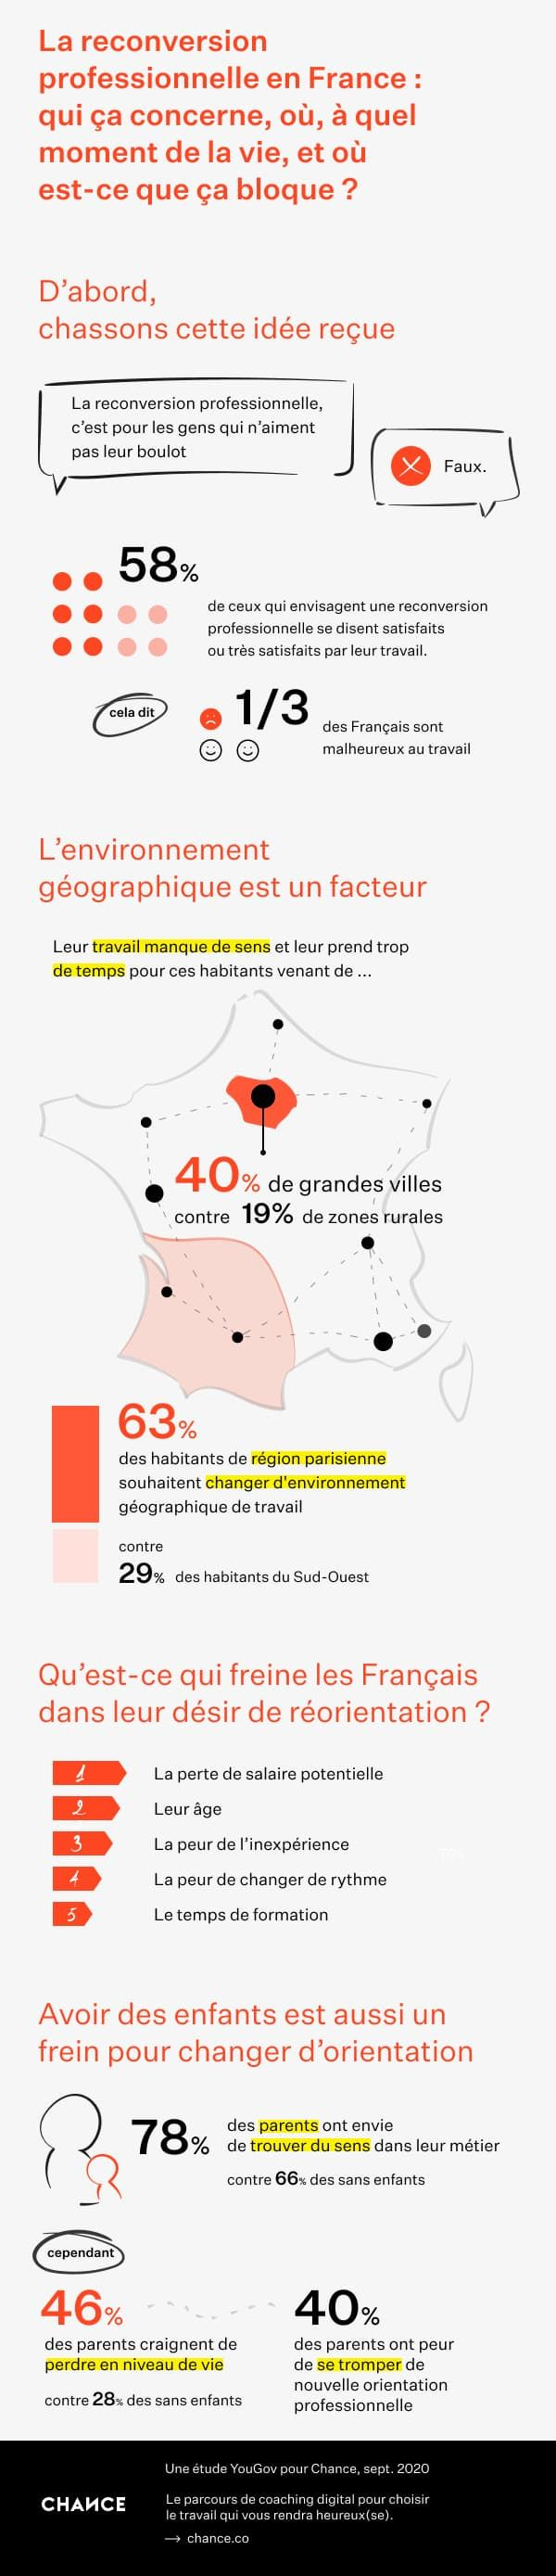 Infographie or étude Chance Reconversion - V2.1